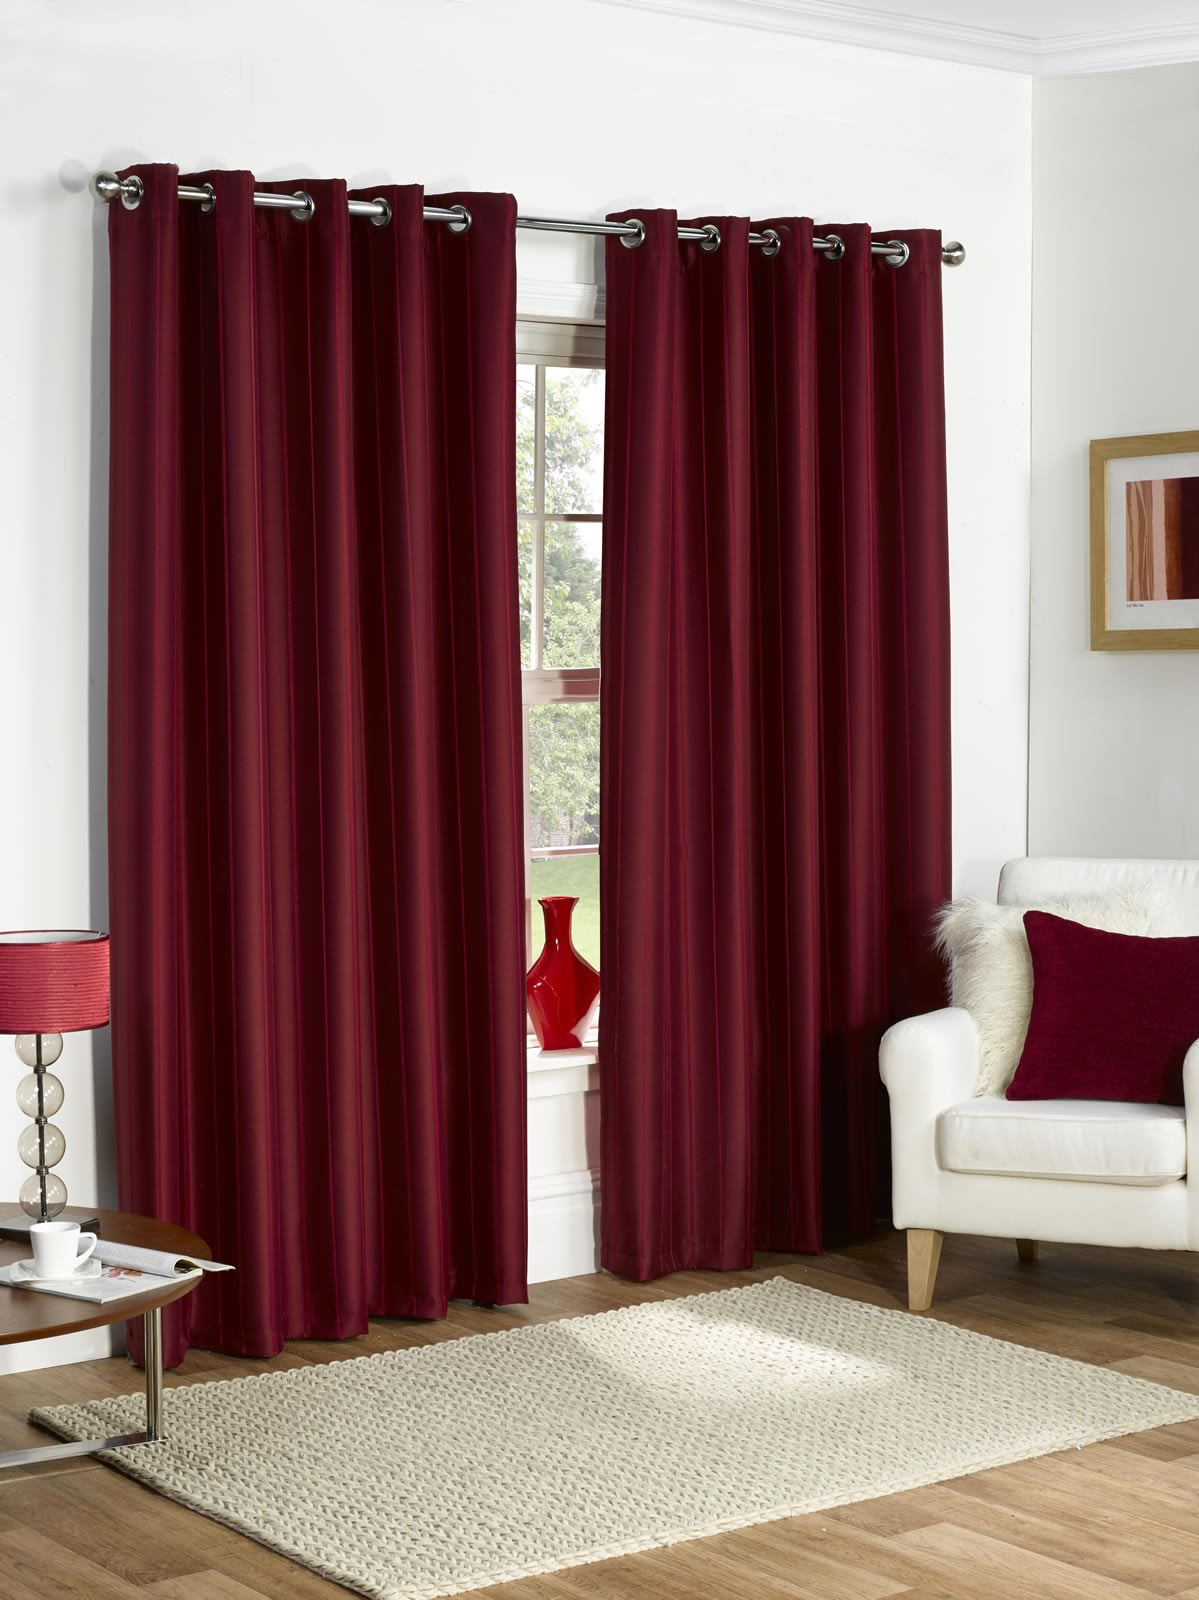 Thermal curtains grey - Thermal Ring Top Fully Lined Blackout Ready Made